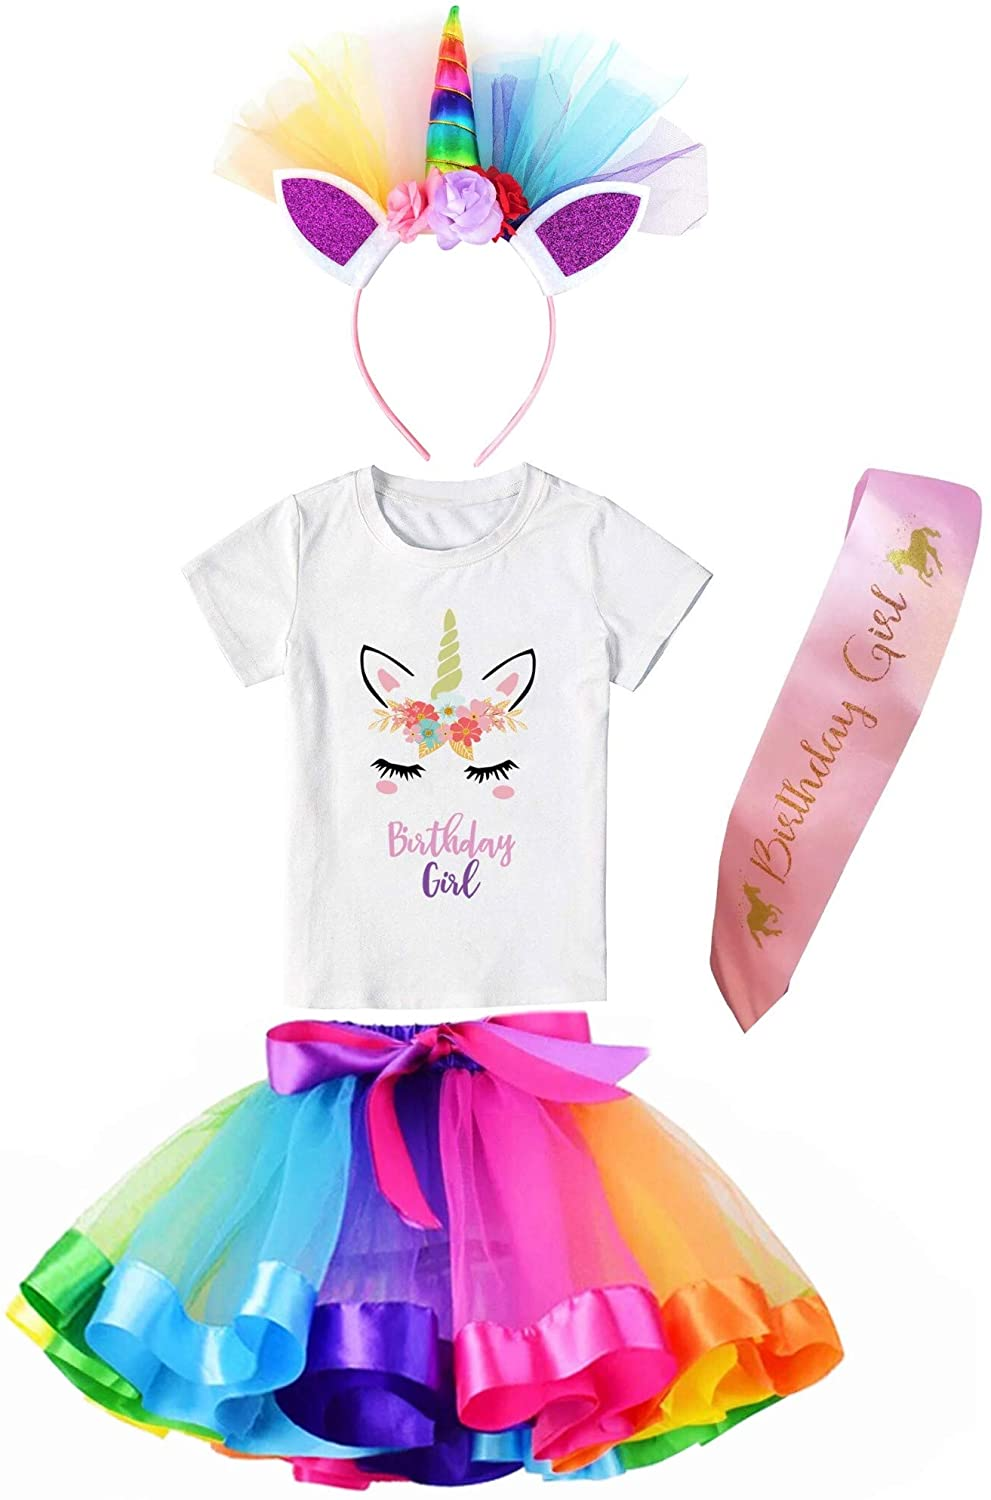 Girls Layered Tutu Skirt with Unicorn Tshirt & Headband (Rainbow, 5-6 Years)